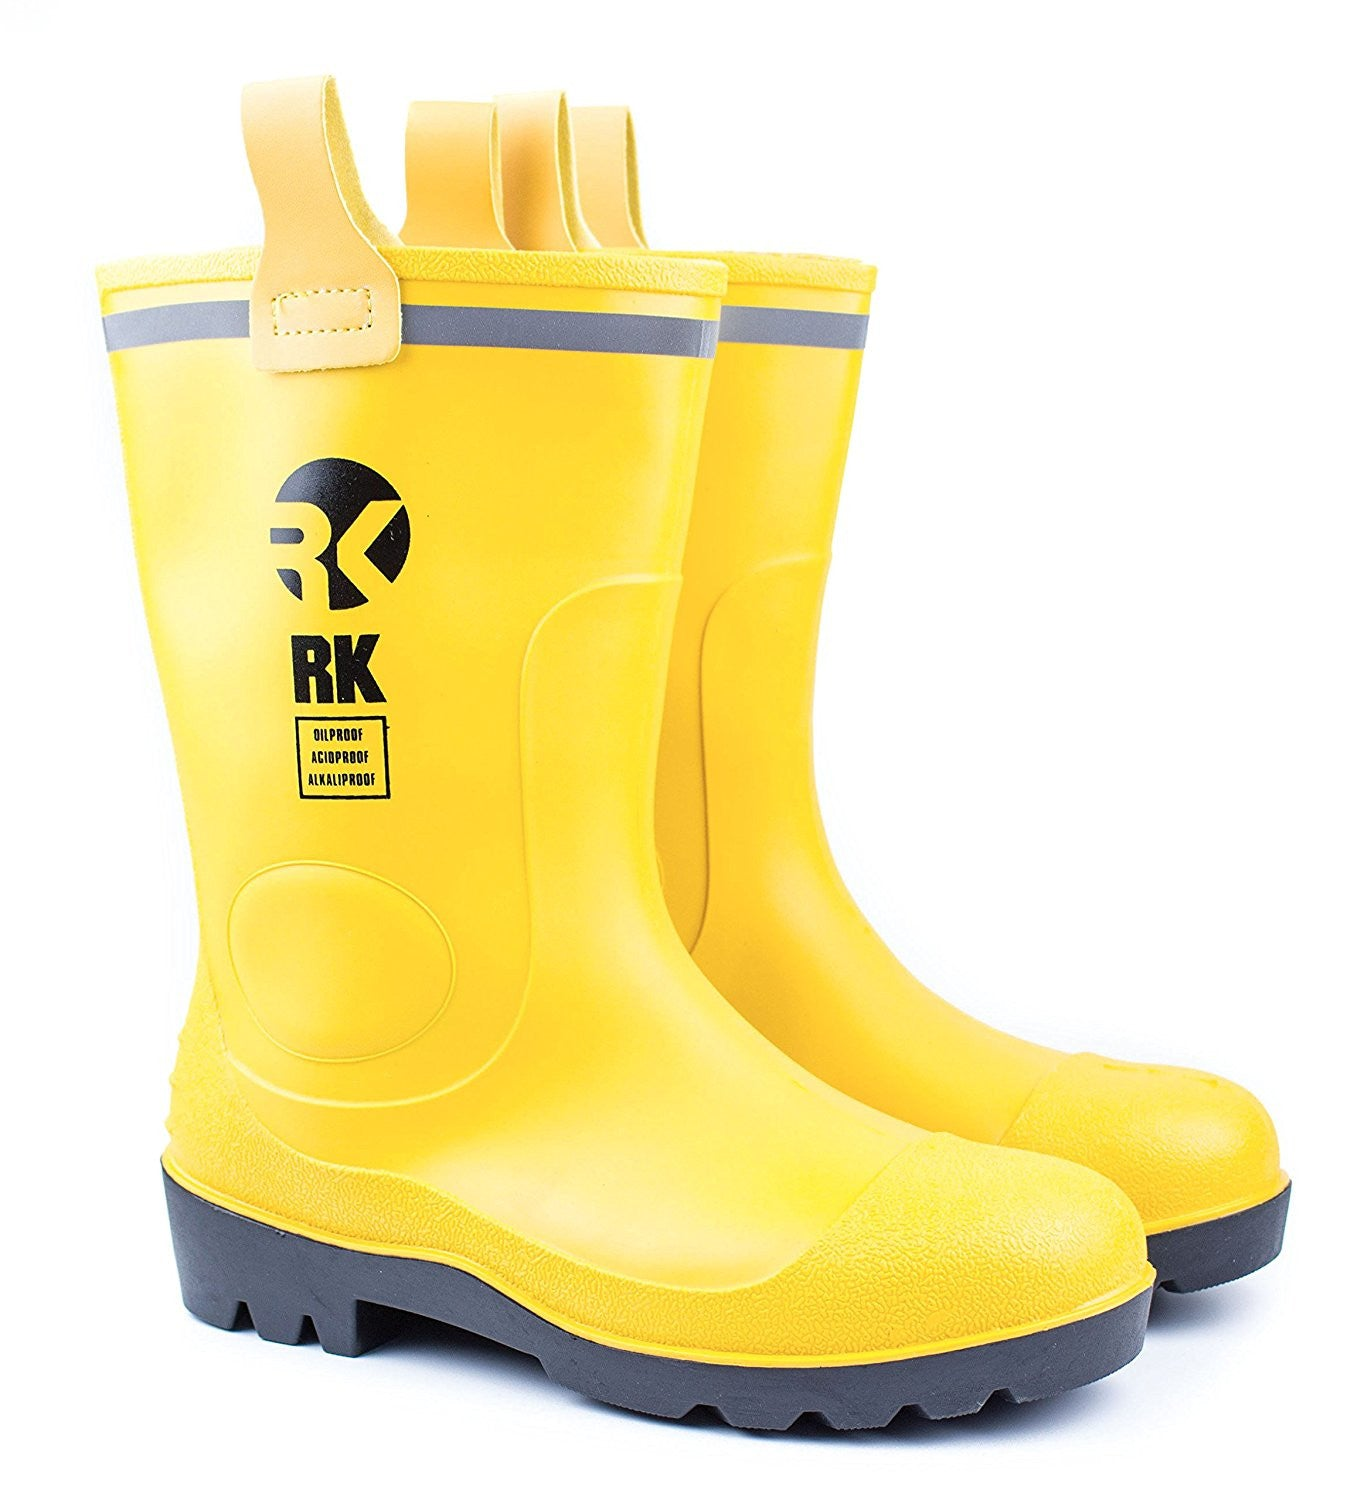 rk mens waterproof rubber sole rain boots yellow rk safety